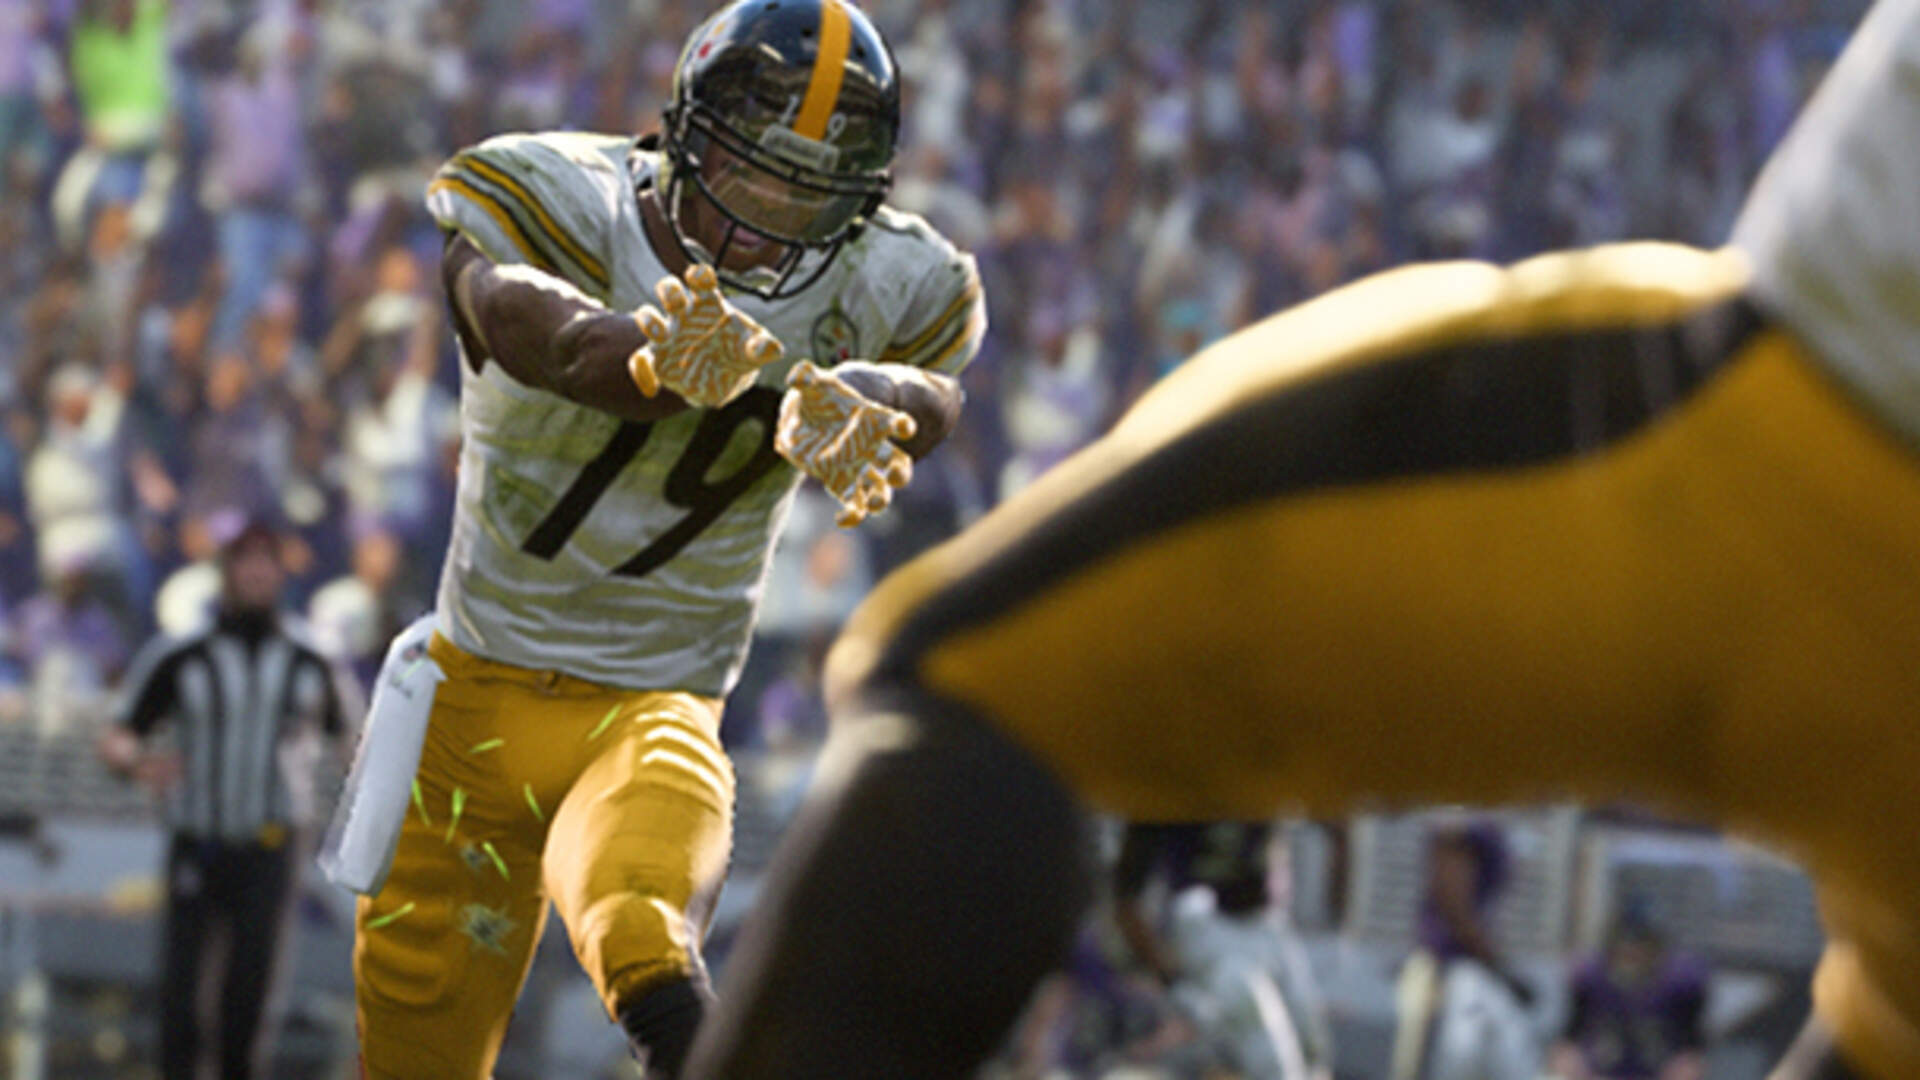 Madden 19 Halftime Show is All New With Real Time Stat Updates for Better Immersion